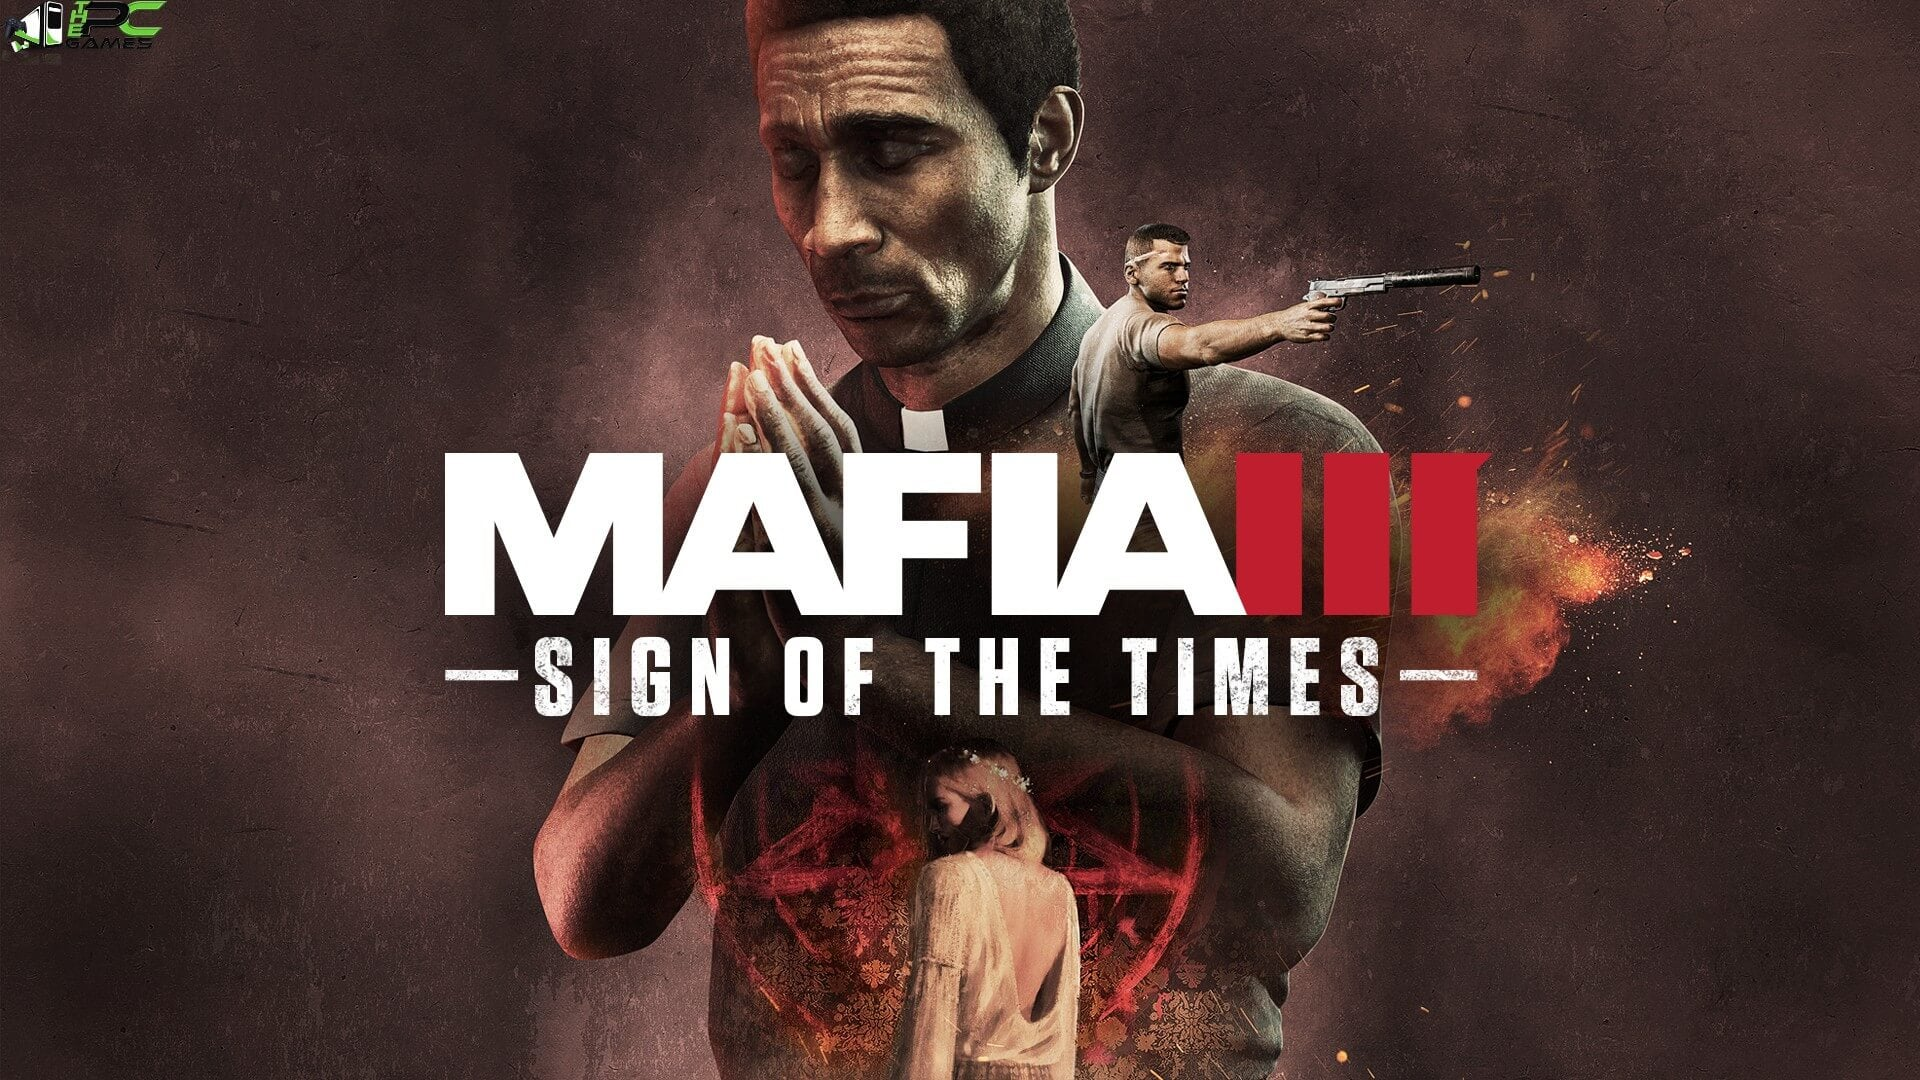 Mafia III Sign of the Times Free Download